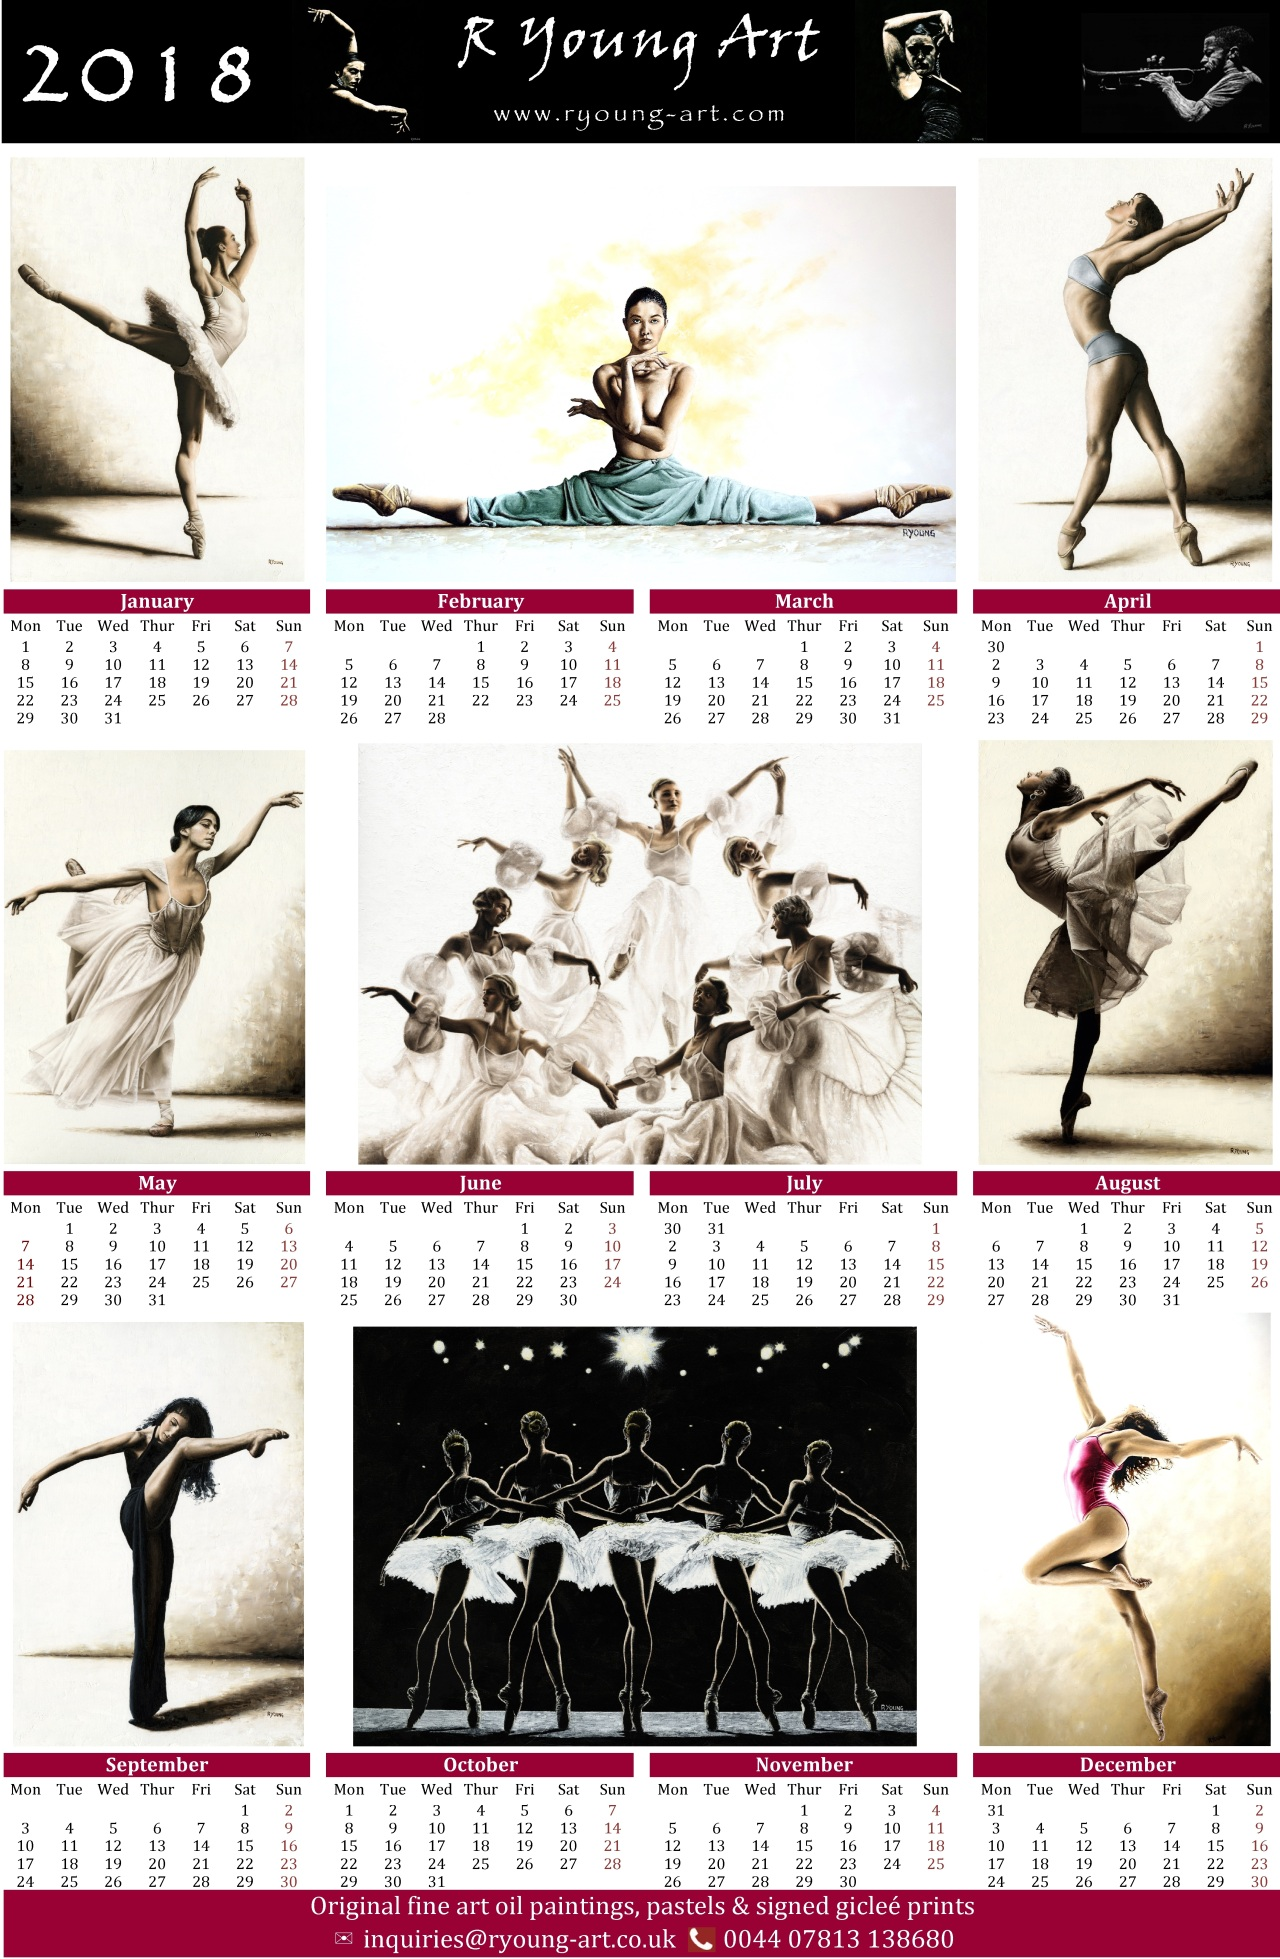 2018 high resolution R Young Art Dance calendar